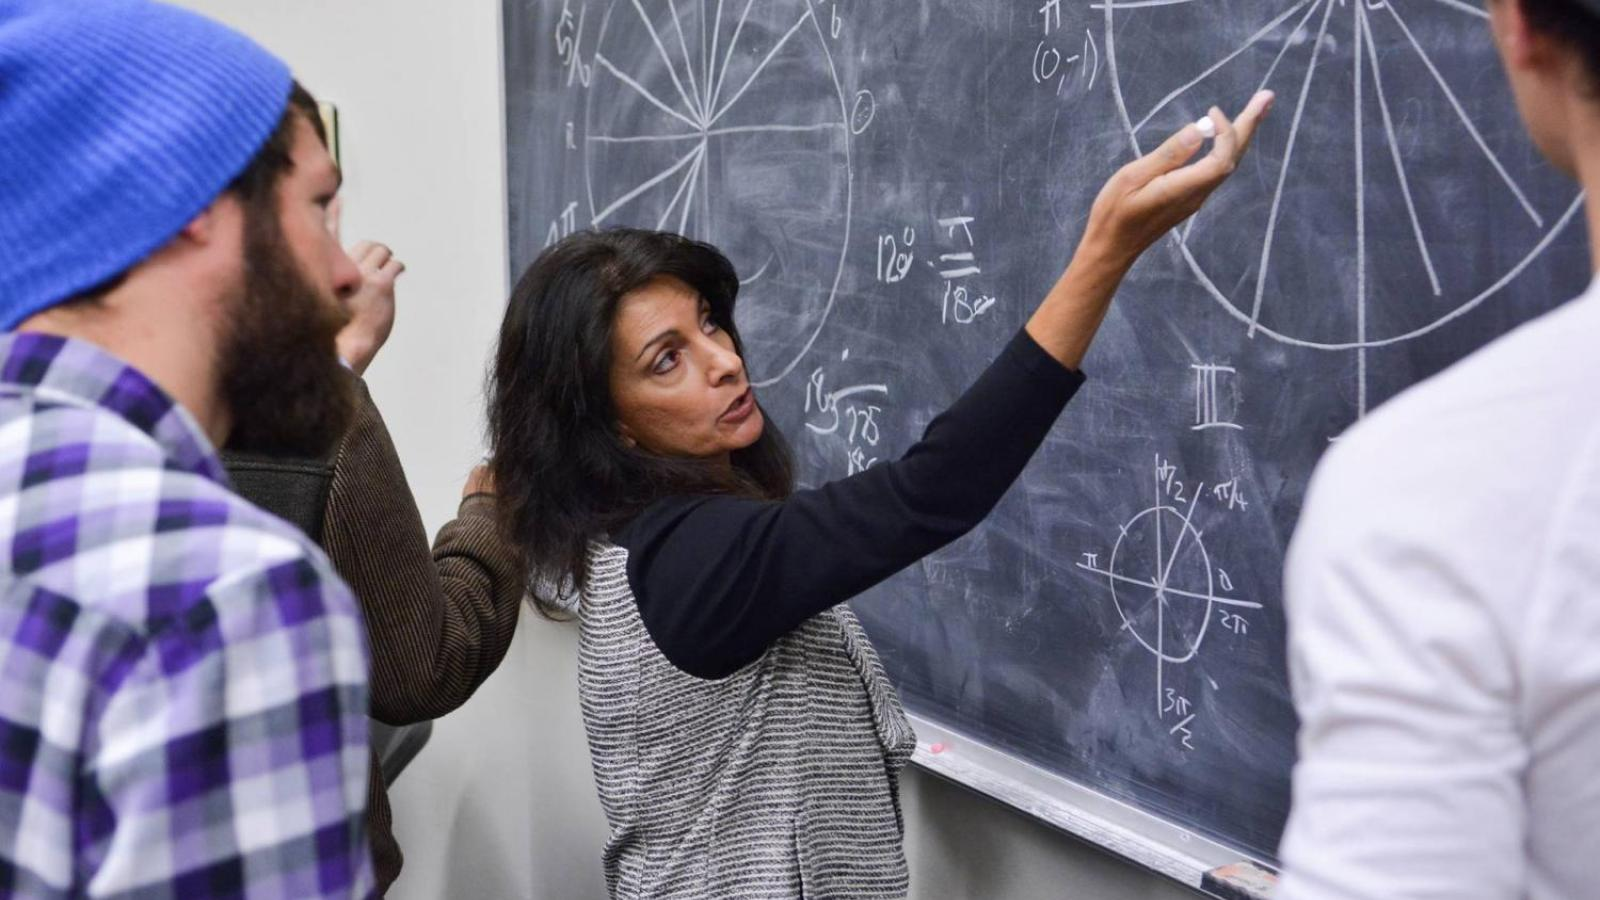 A female professor instructs students at the board.